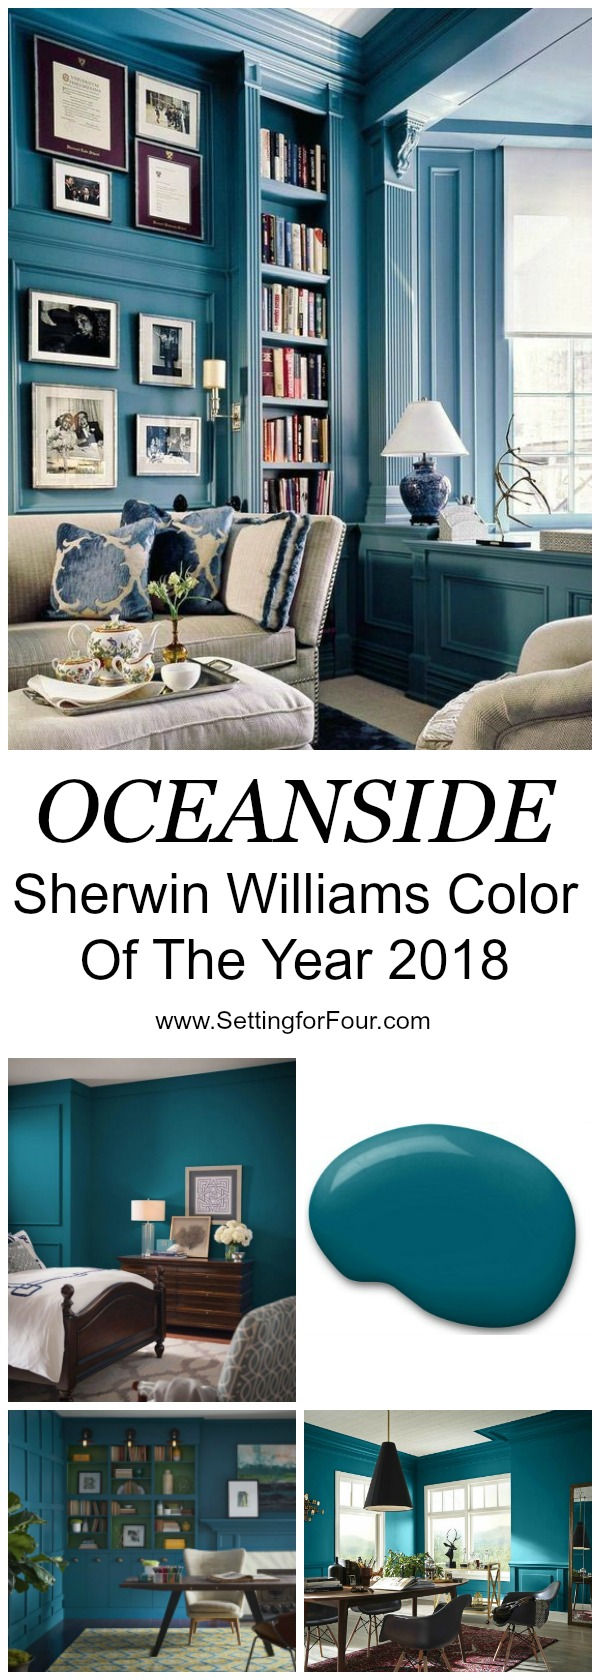 Diy home decor and paint color inspiration sherwin williams oceanside color of the year